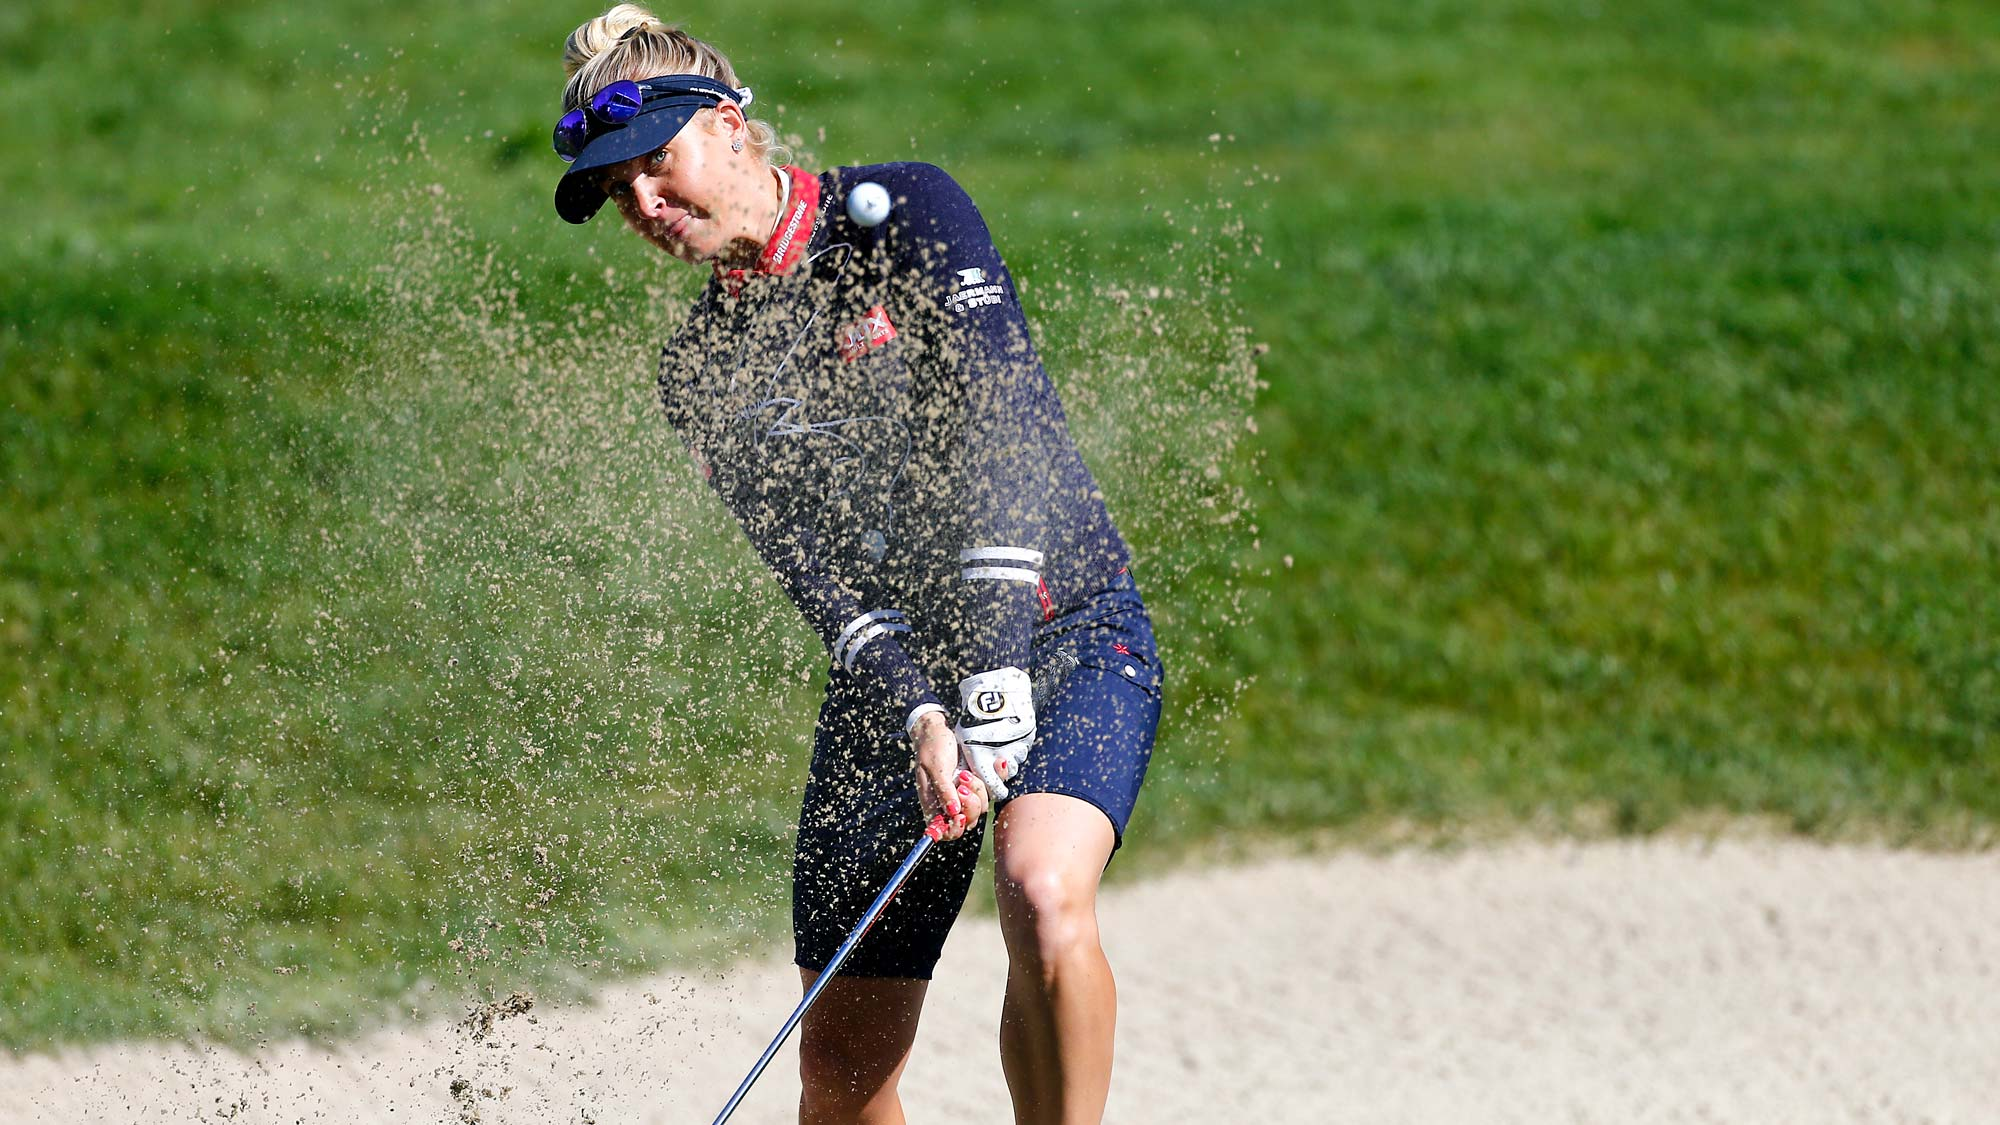 Charley Hull of England hits out of the bunker on the 18th hole during the first round of the LPGA Mediheal Championship